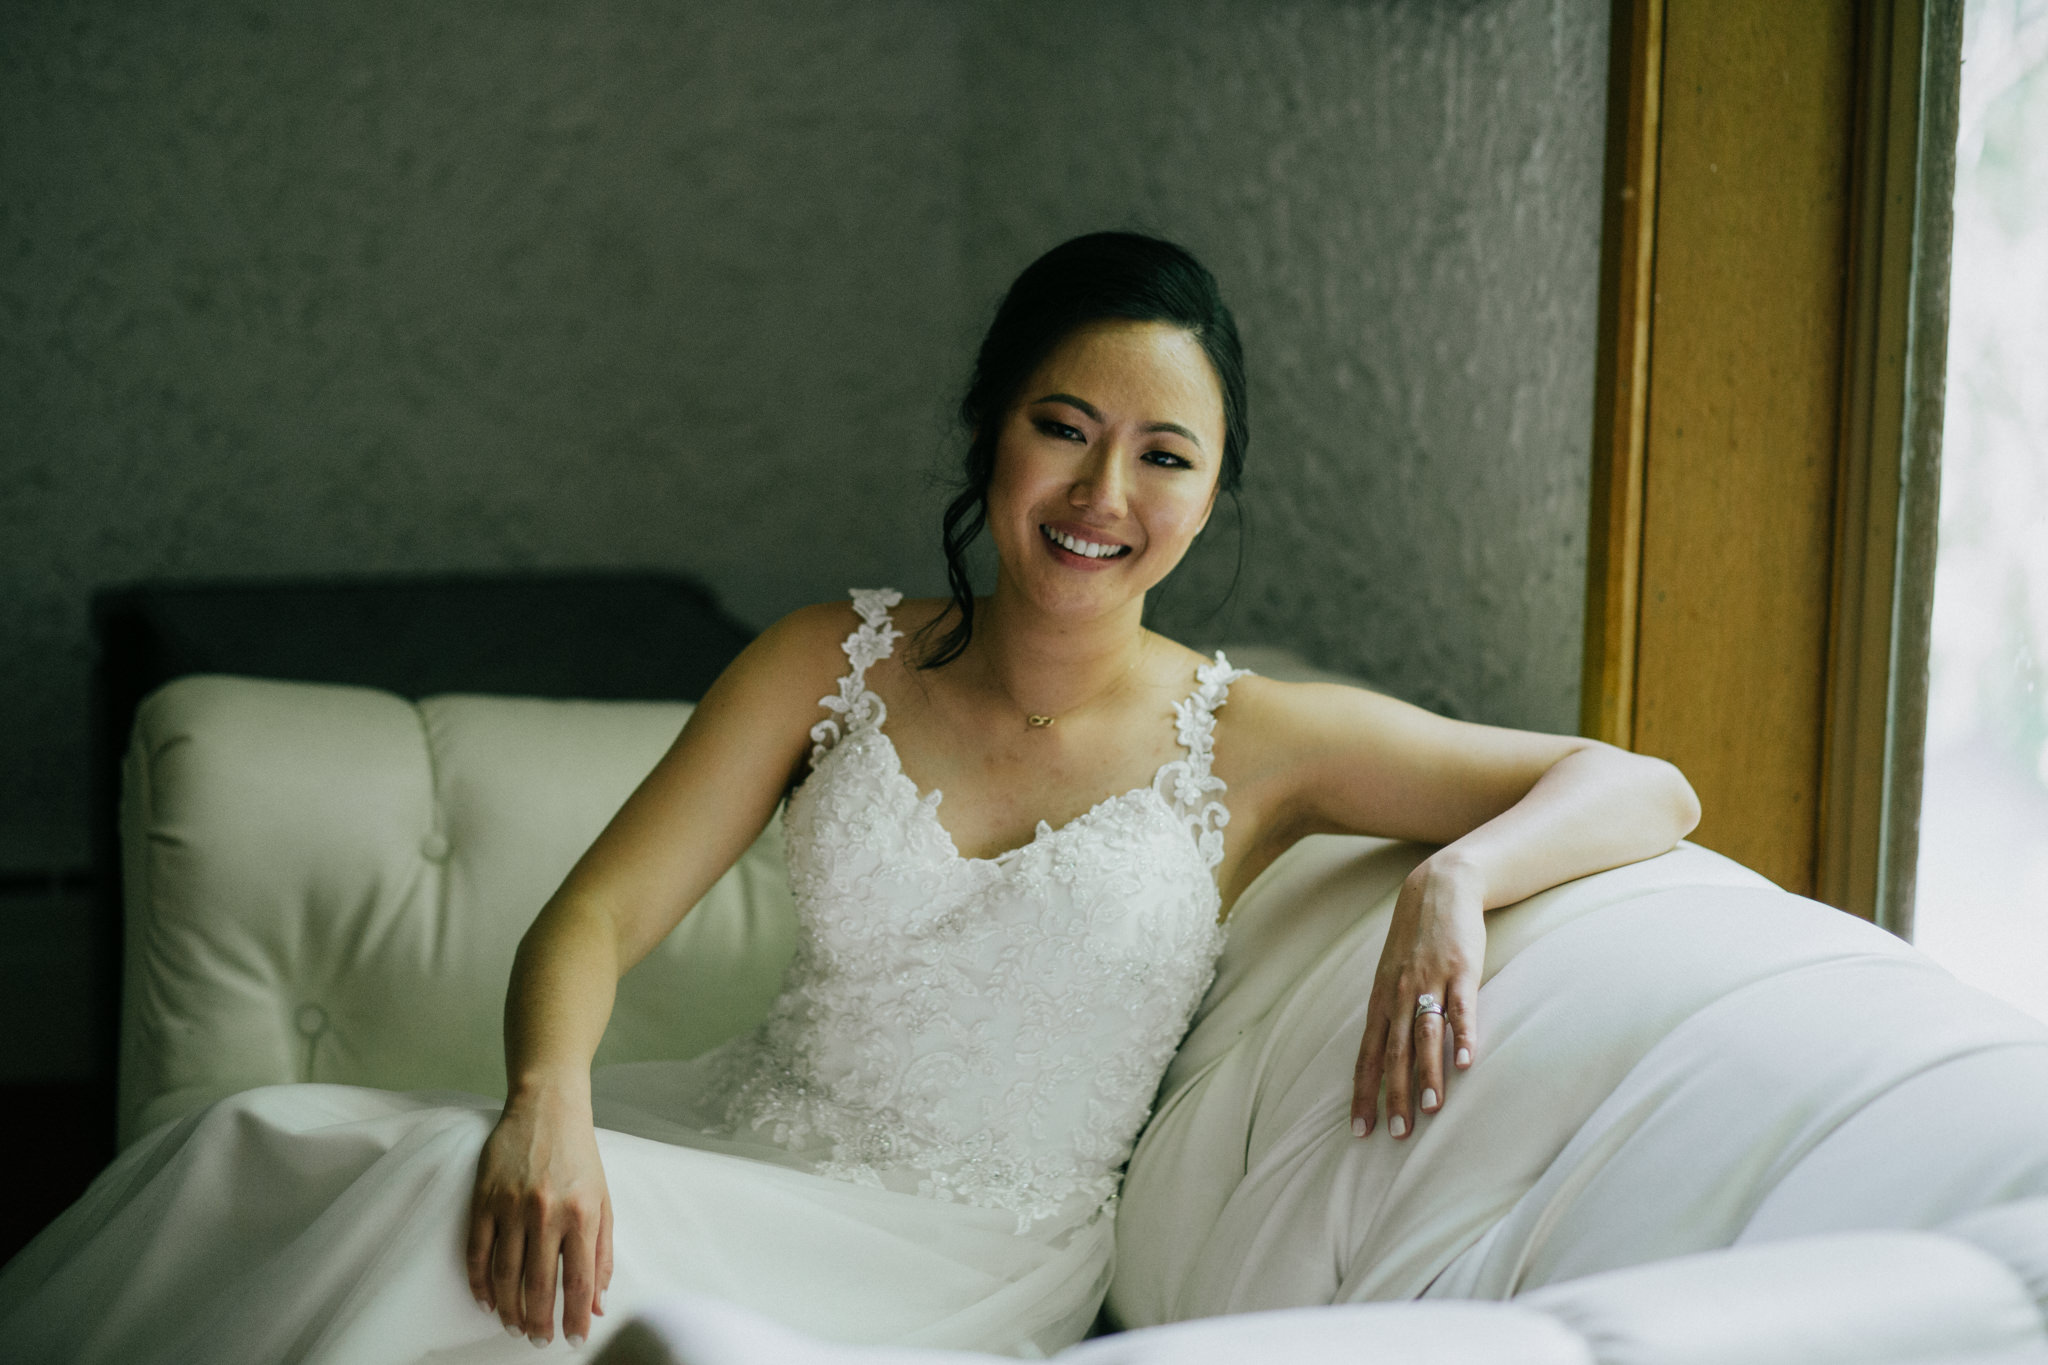 bride smiling while leaning on a couch